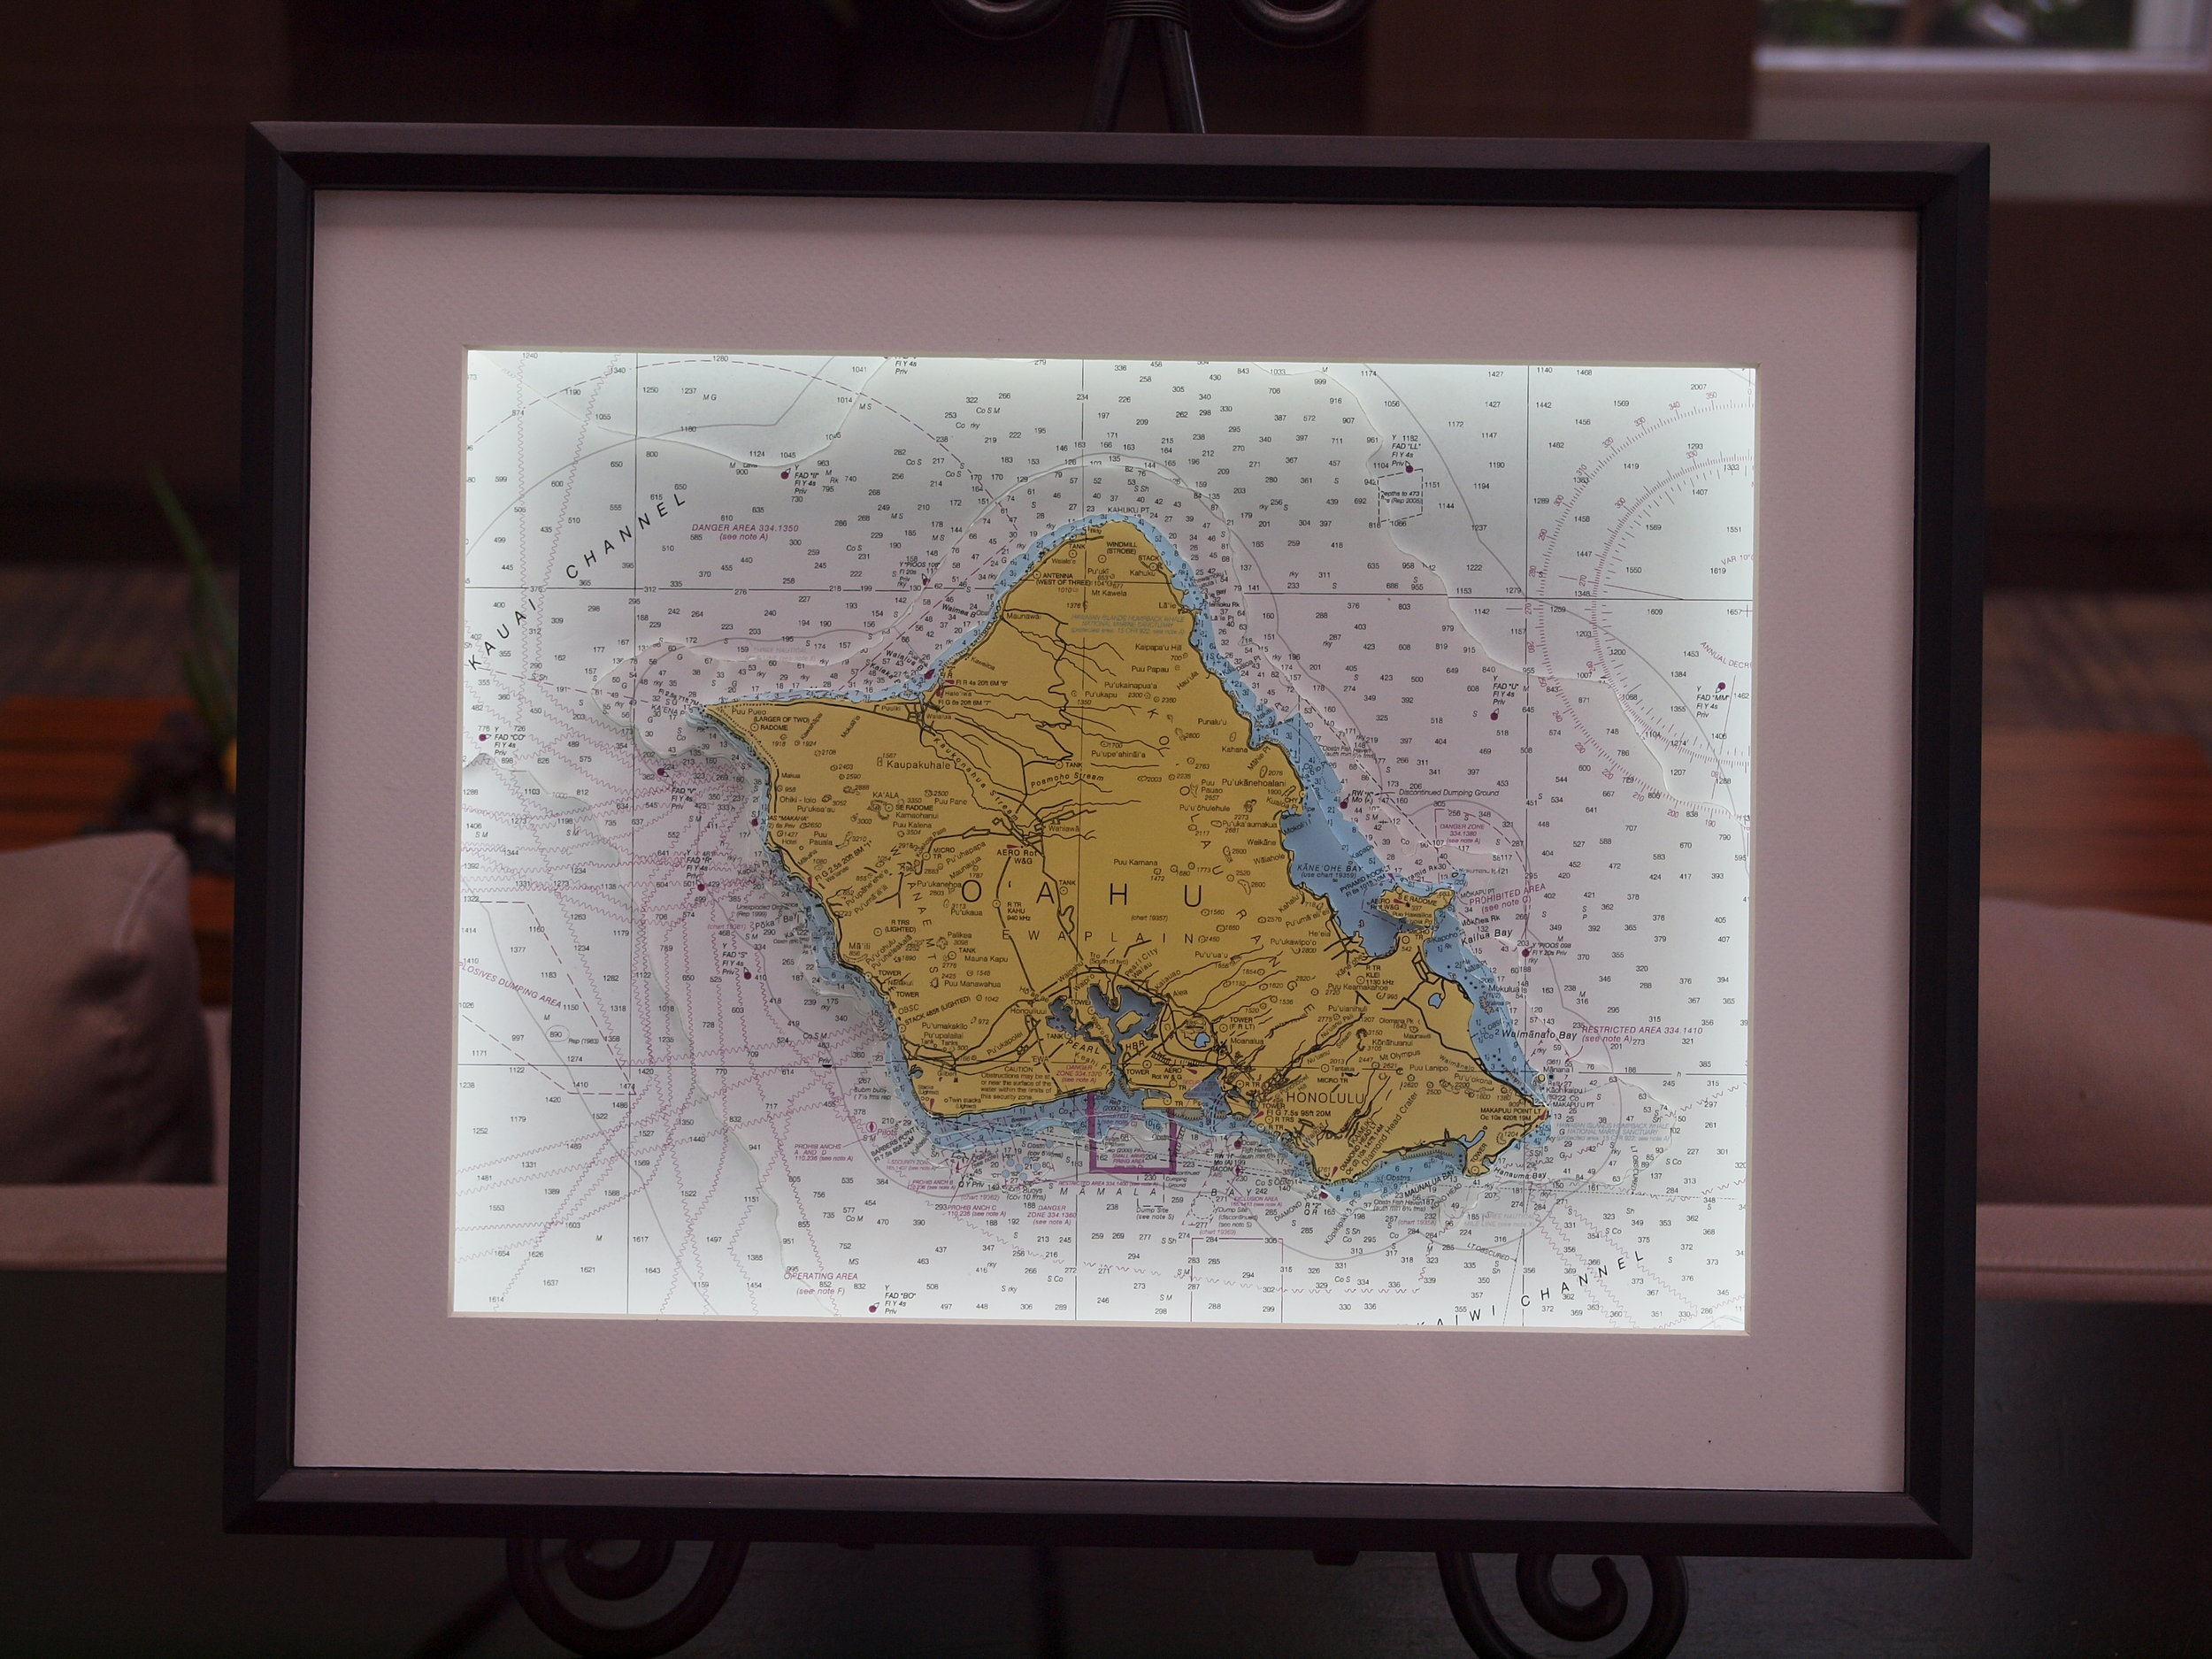 3D nautical chart of Oahu, Hawaii, USA by Neptune Maps